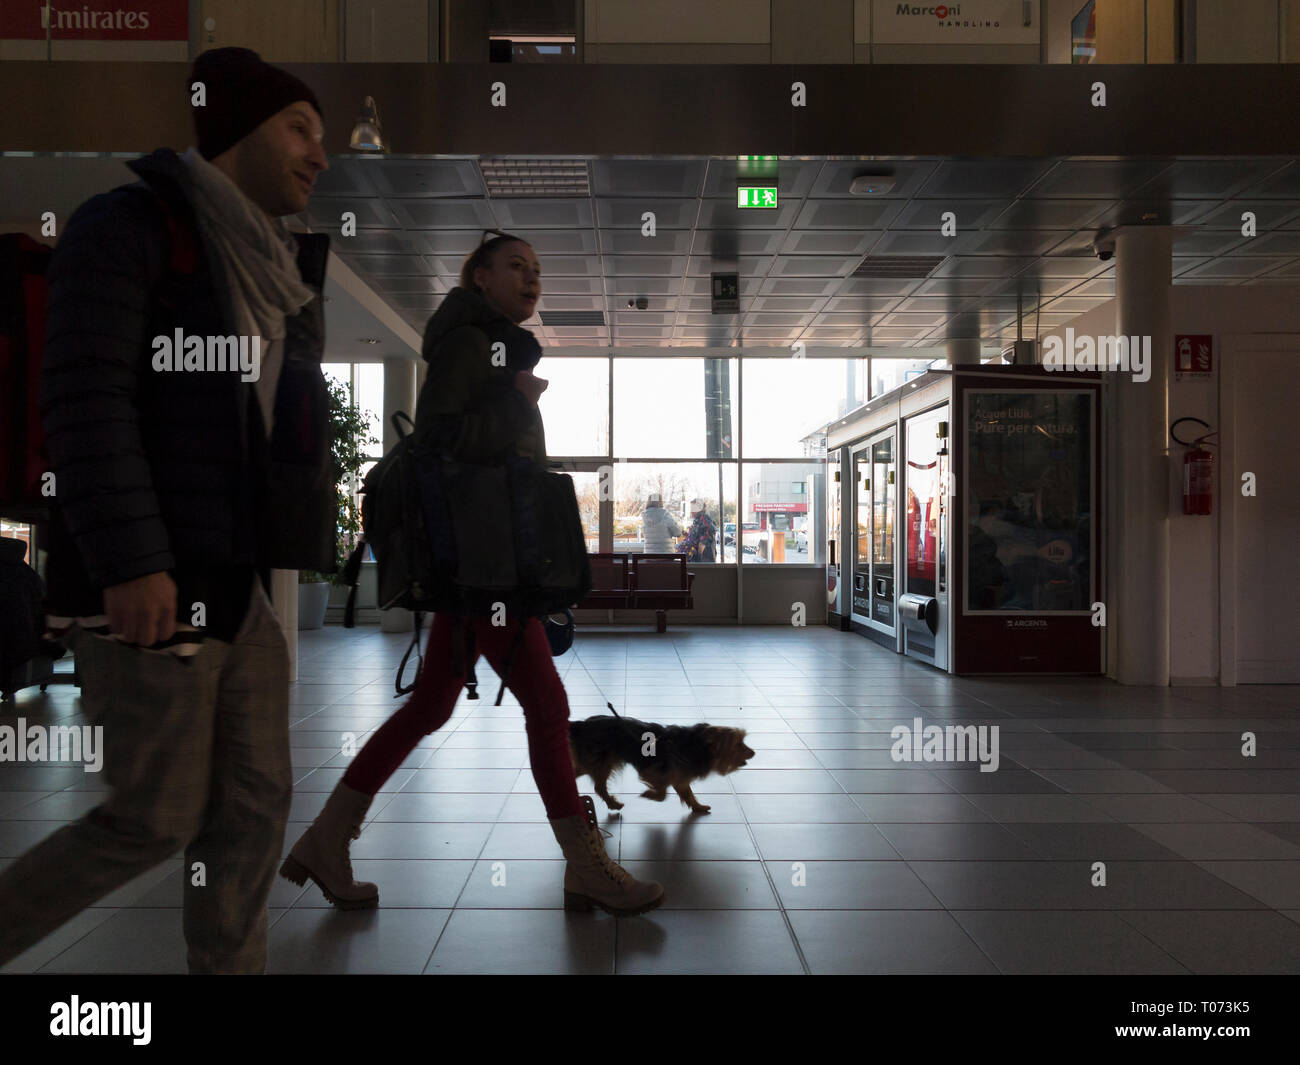 Traveller with pet dog inside an airport, Bologna airport, Italy - Stock Image